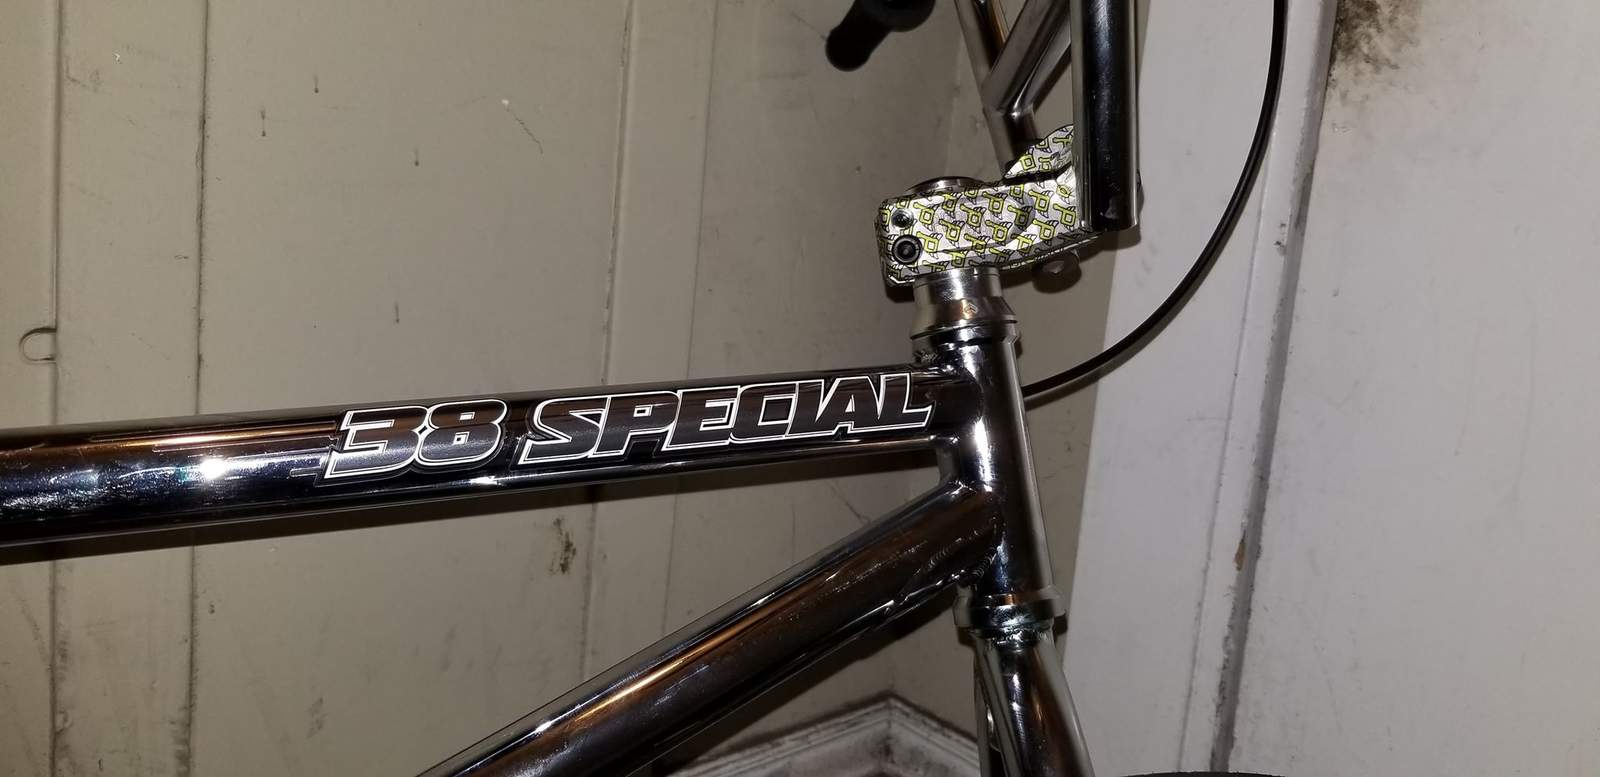 http://uploads.bmxmuseum.com/user-images/162404/38decals5d37d5cbb8.jpg